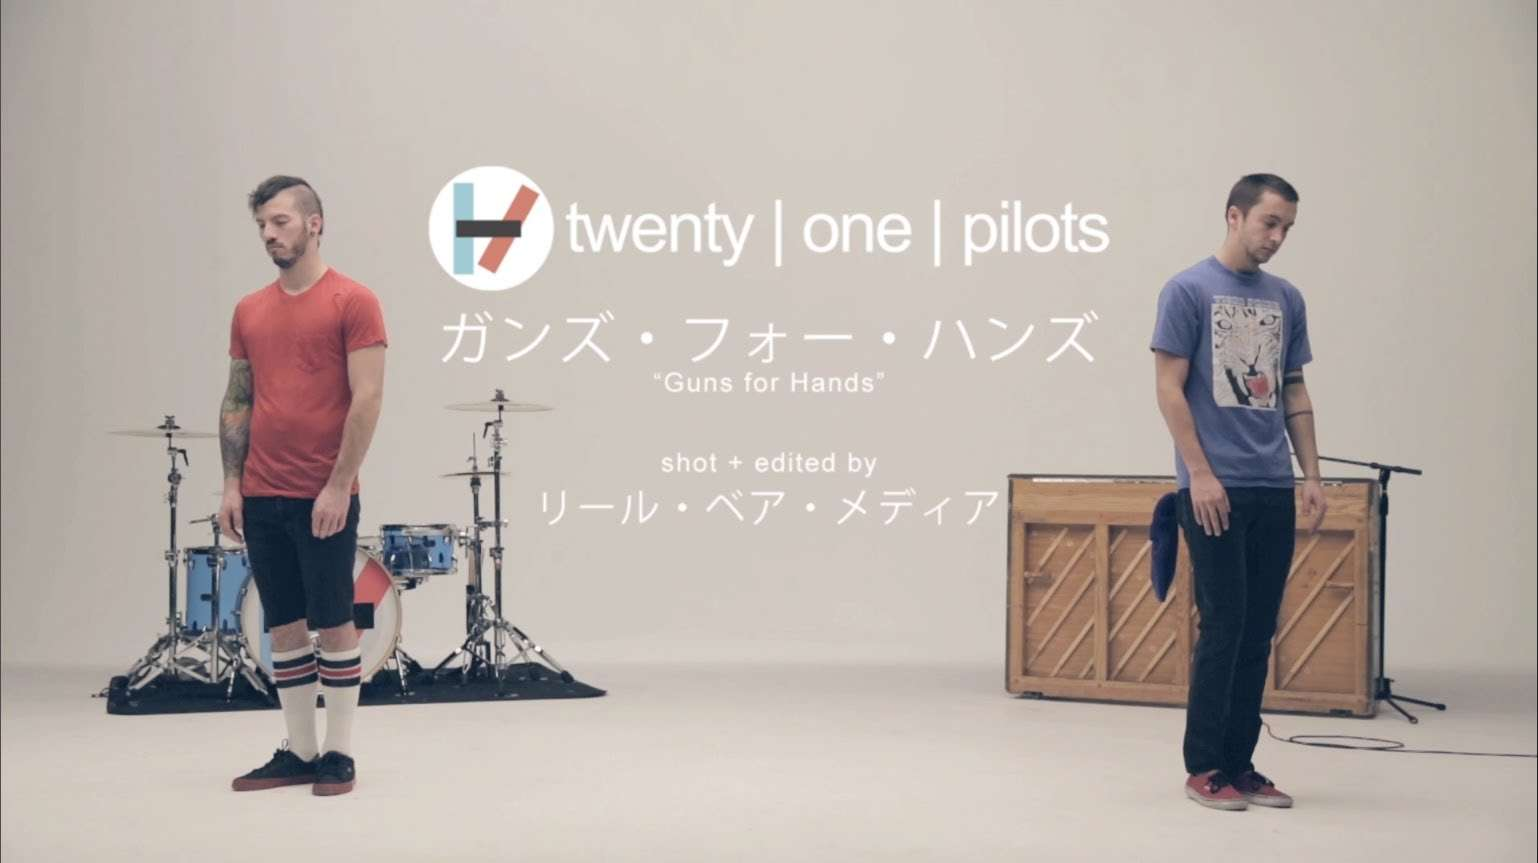 twenty one pilots: Guns For Hands [OFFICIAL VIDEO] - YouTube